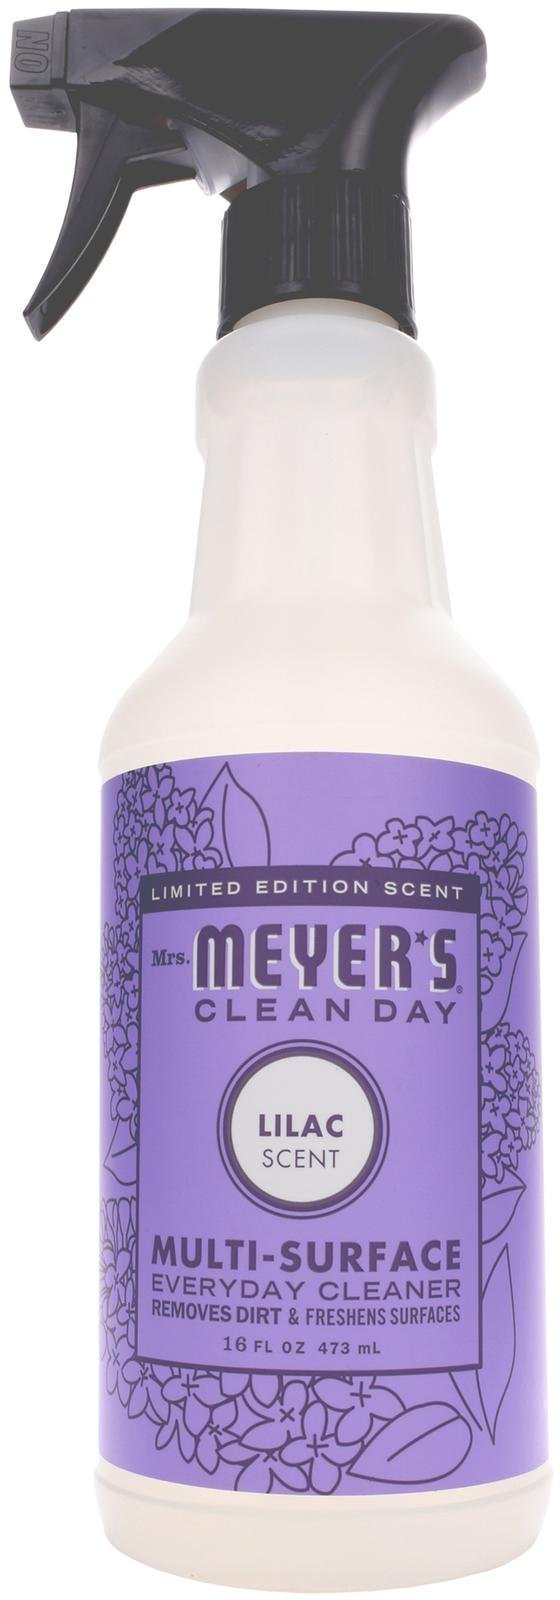 Mrs. Meyer's Clean Day Multi-surface Everyday Cleaner, 16.0 Fluid Ounce by Mrs. Meyer's Clean Day